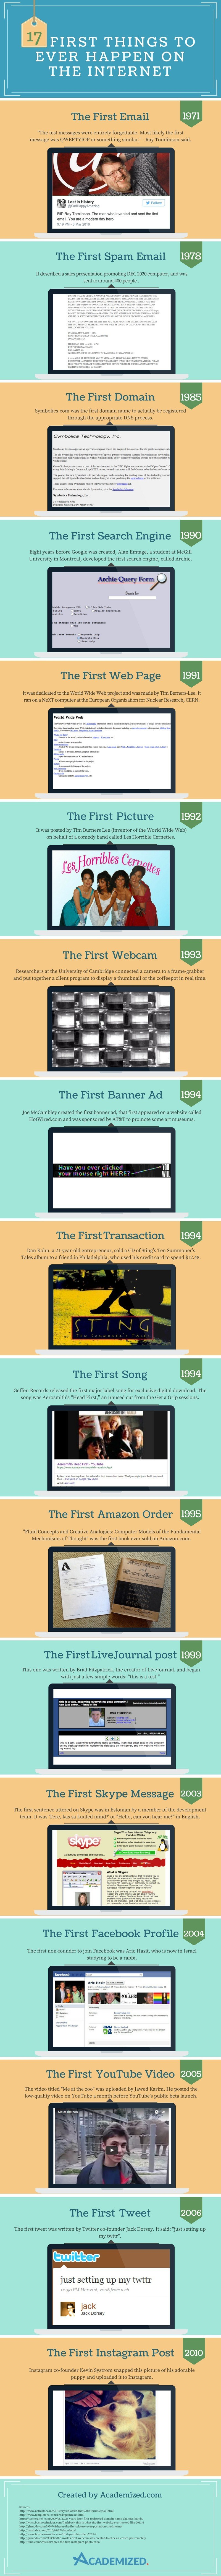 A Look Back at #Internet Firsts #Infographic